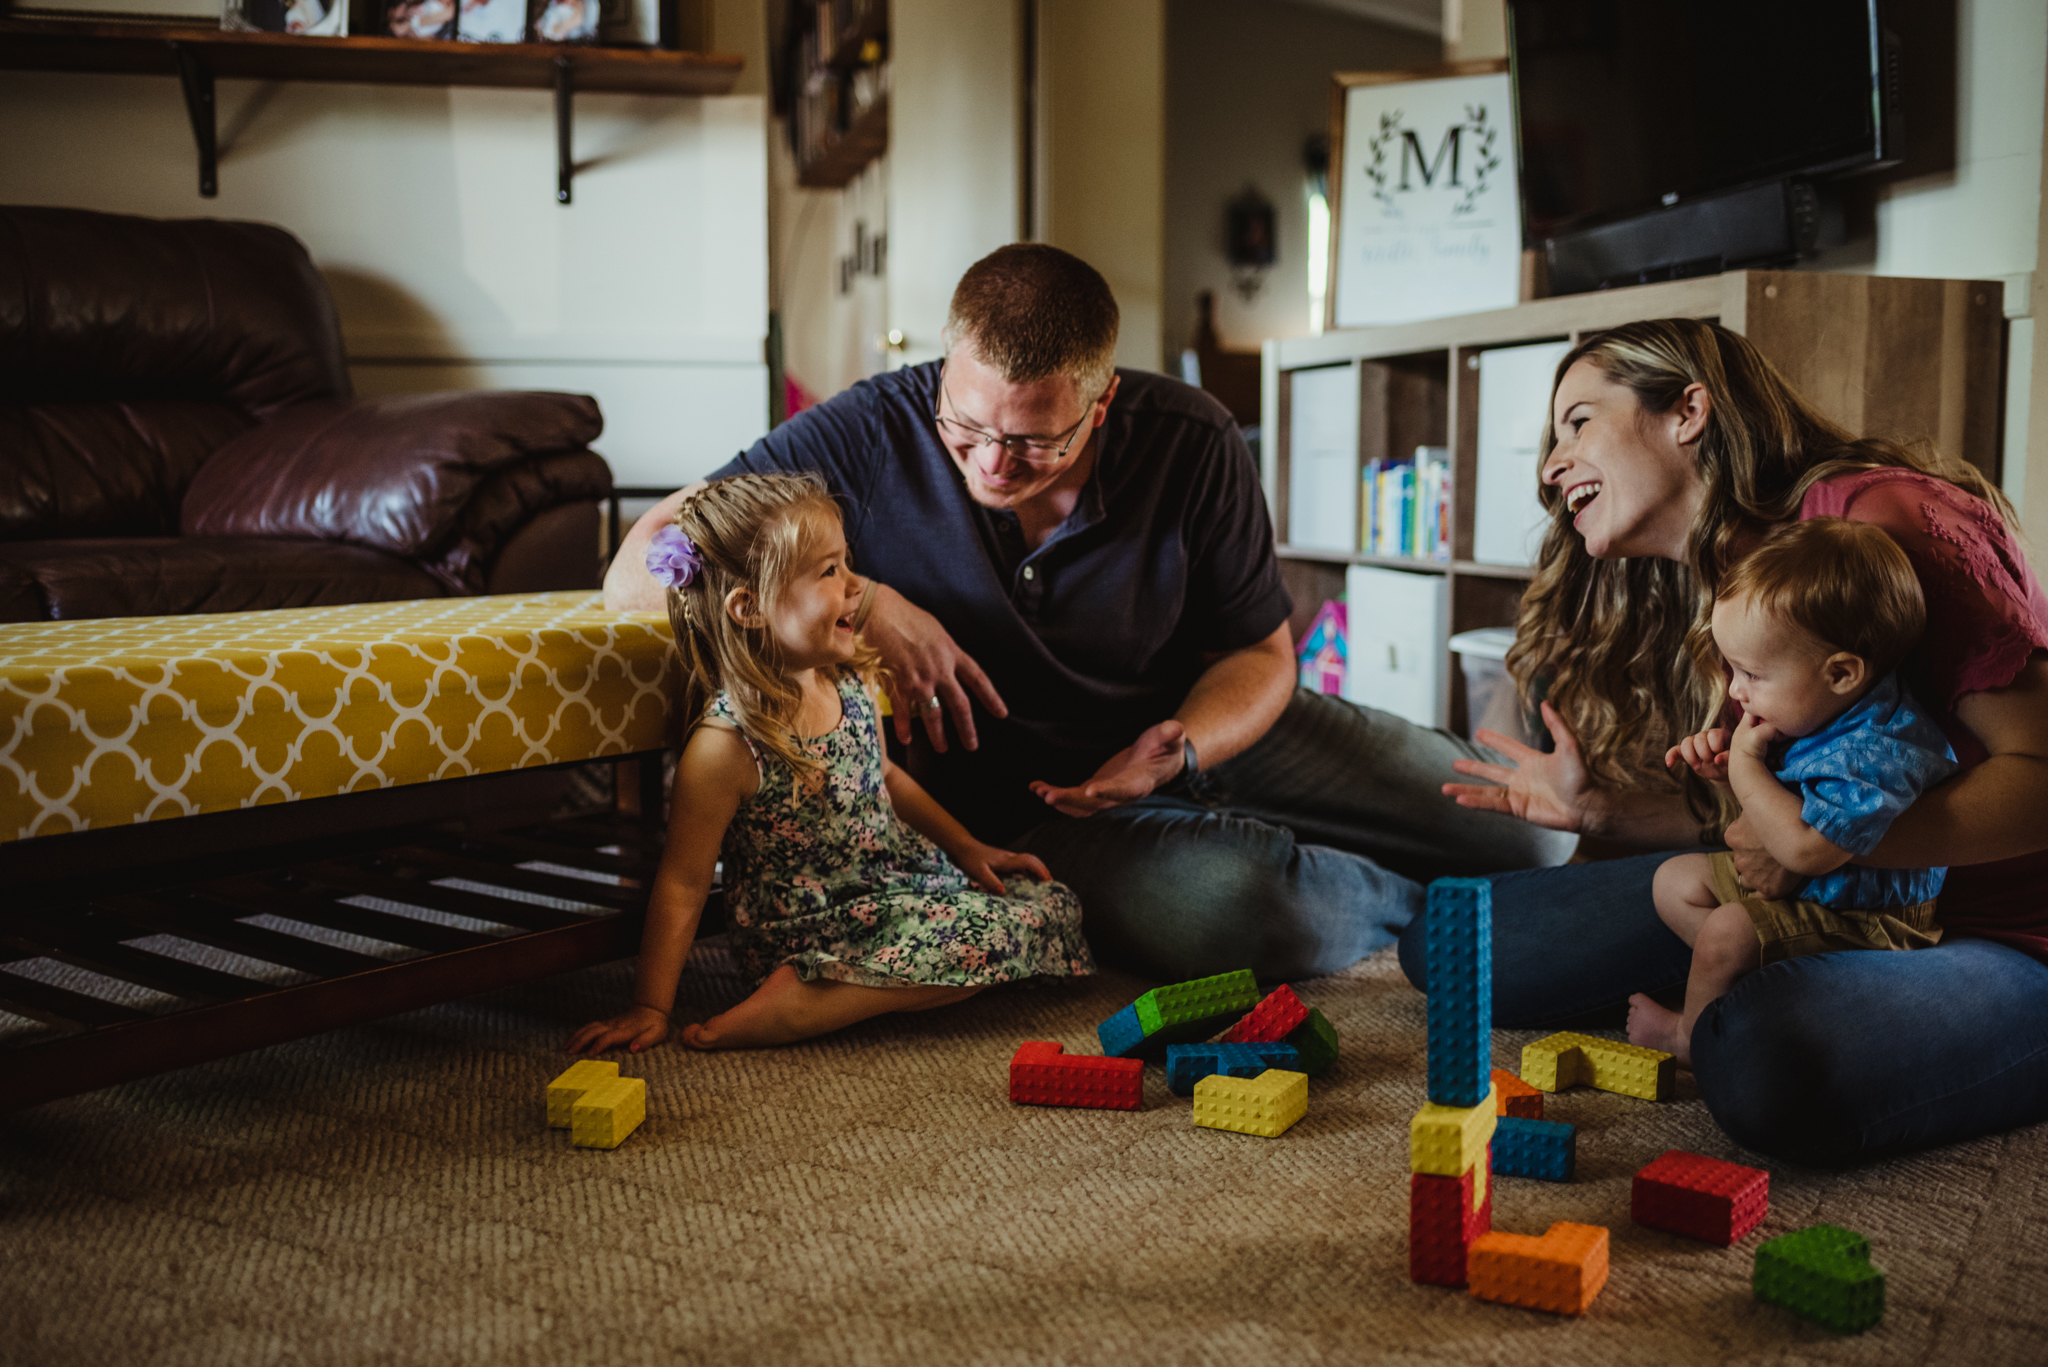 The family laughs while playing blocks together in the living room during their lifestyle session at home in Wake Forest with Rose Trail Images.